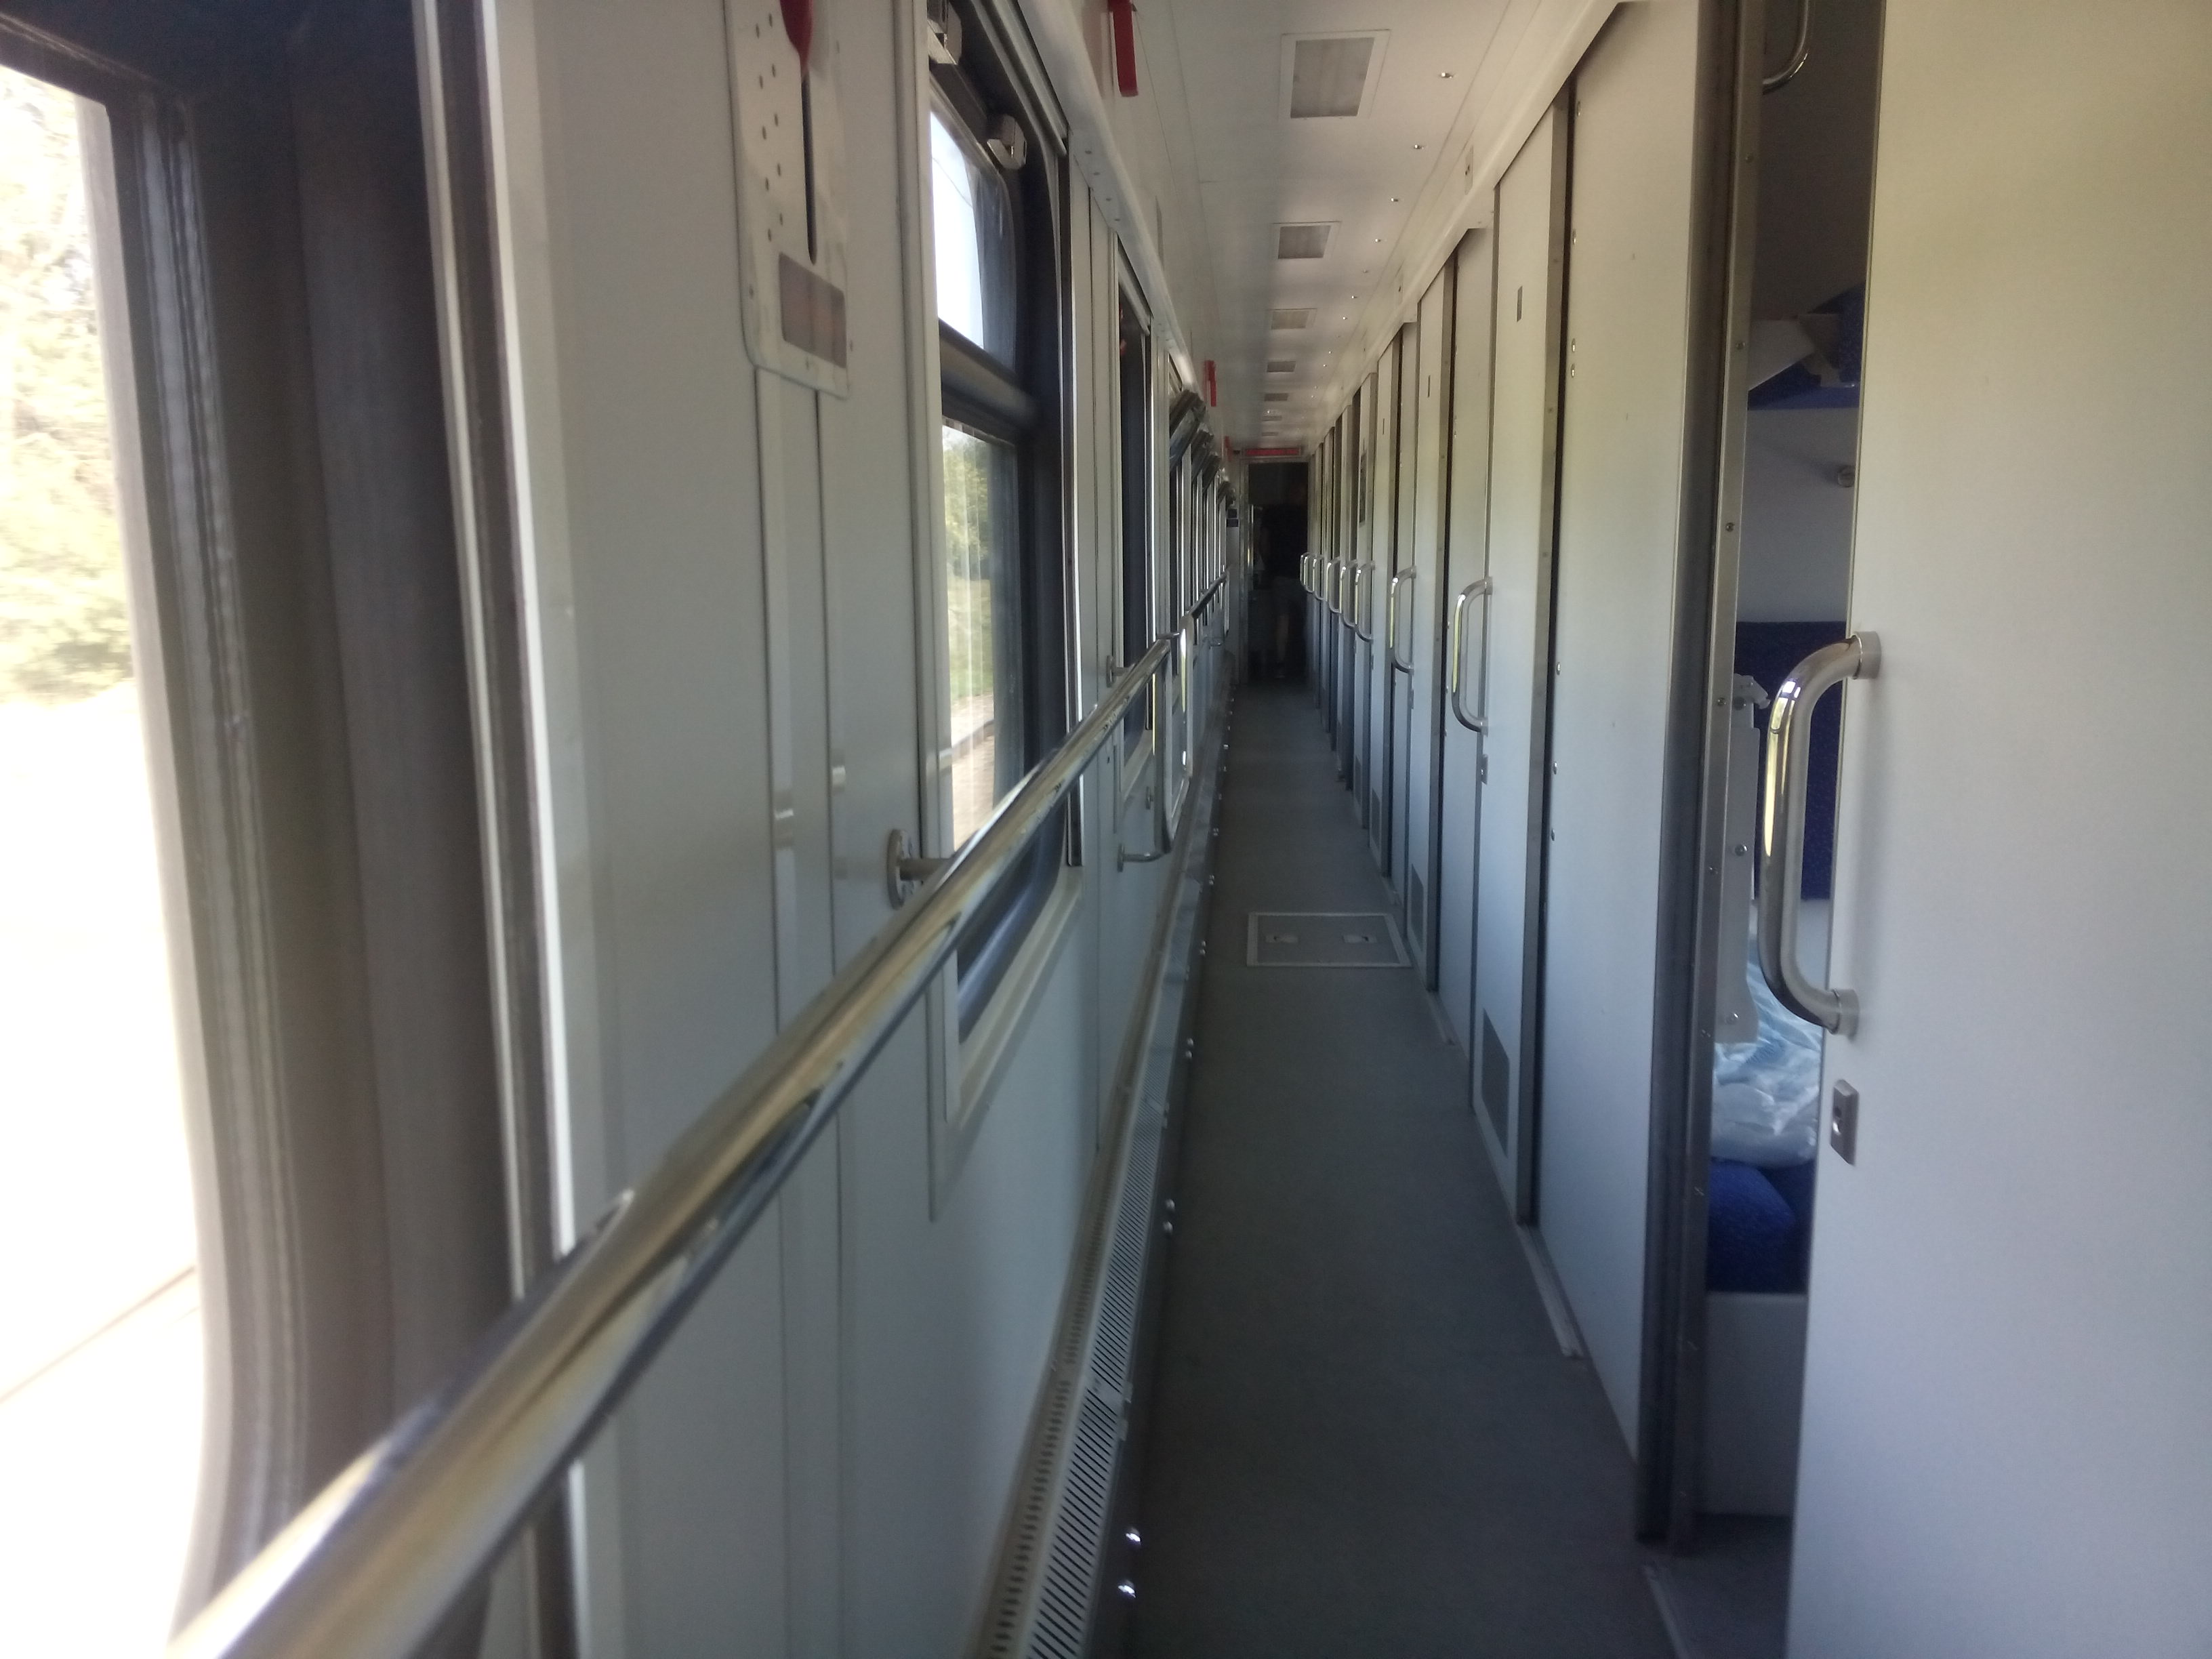 A narrow corridor inside a train, with windows on the left and doors to compartments on the right